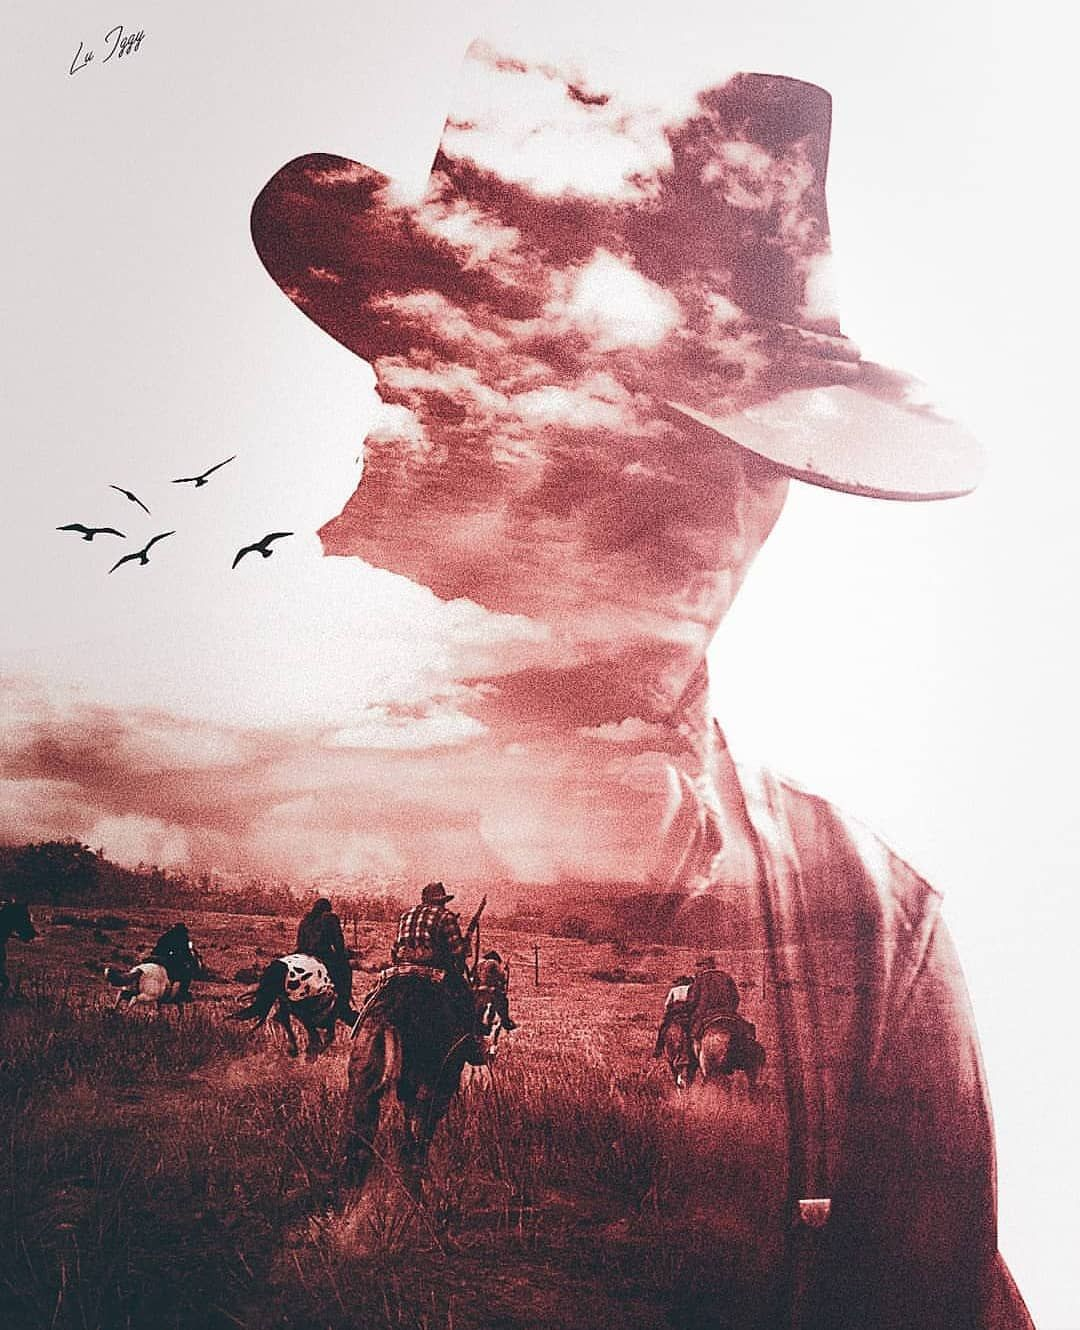 Video Game Red Dead Redemption 2 Arthur Morgan 1080x2160 Wallpaper Red Dead Redemption Red Dead Redemption Ii Red Dead Redemption Art